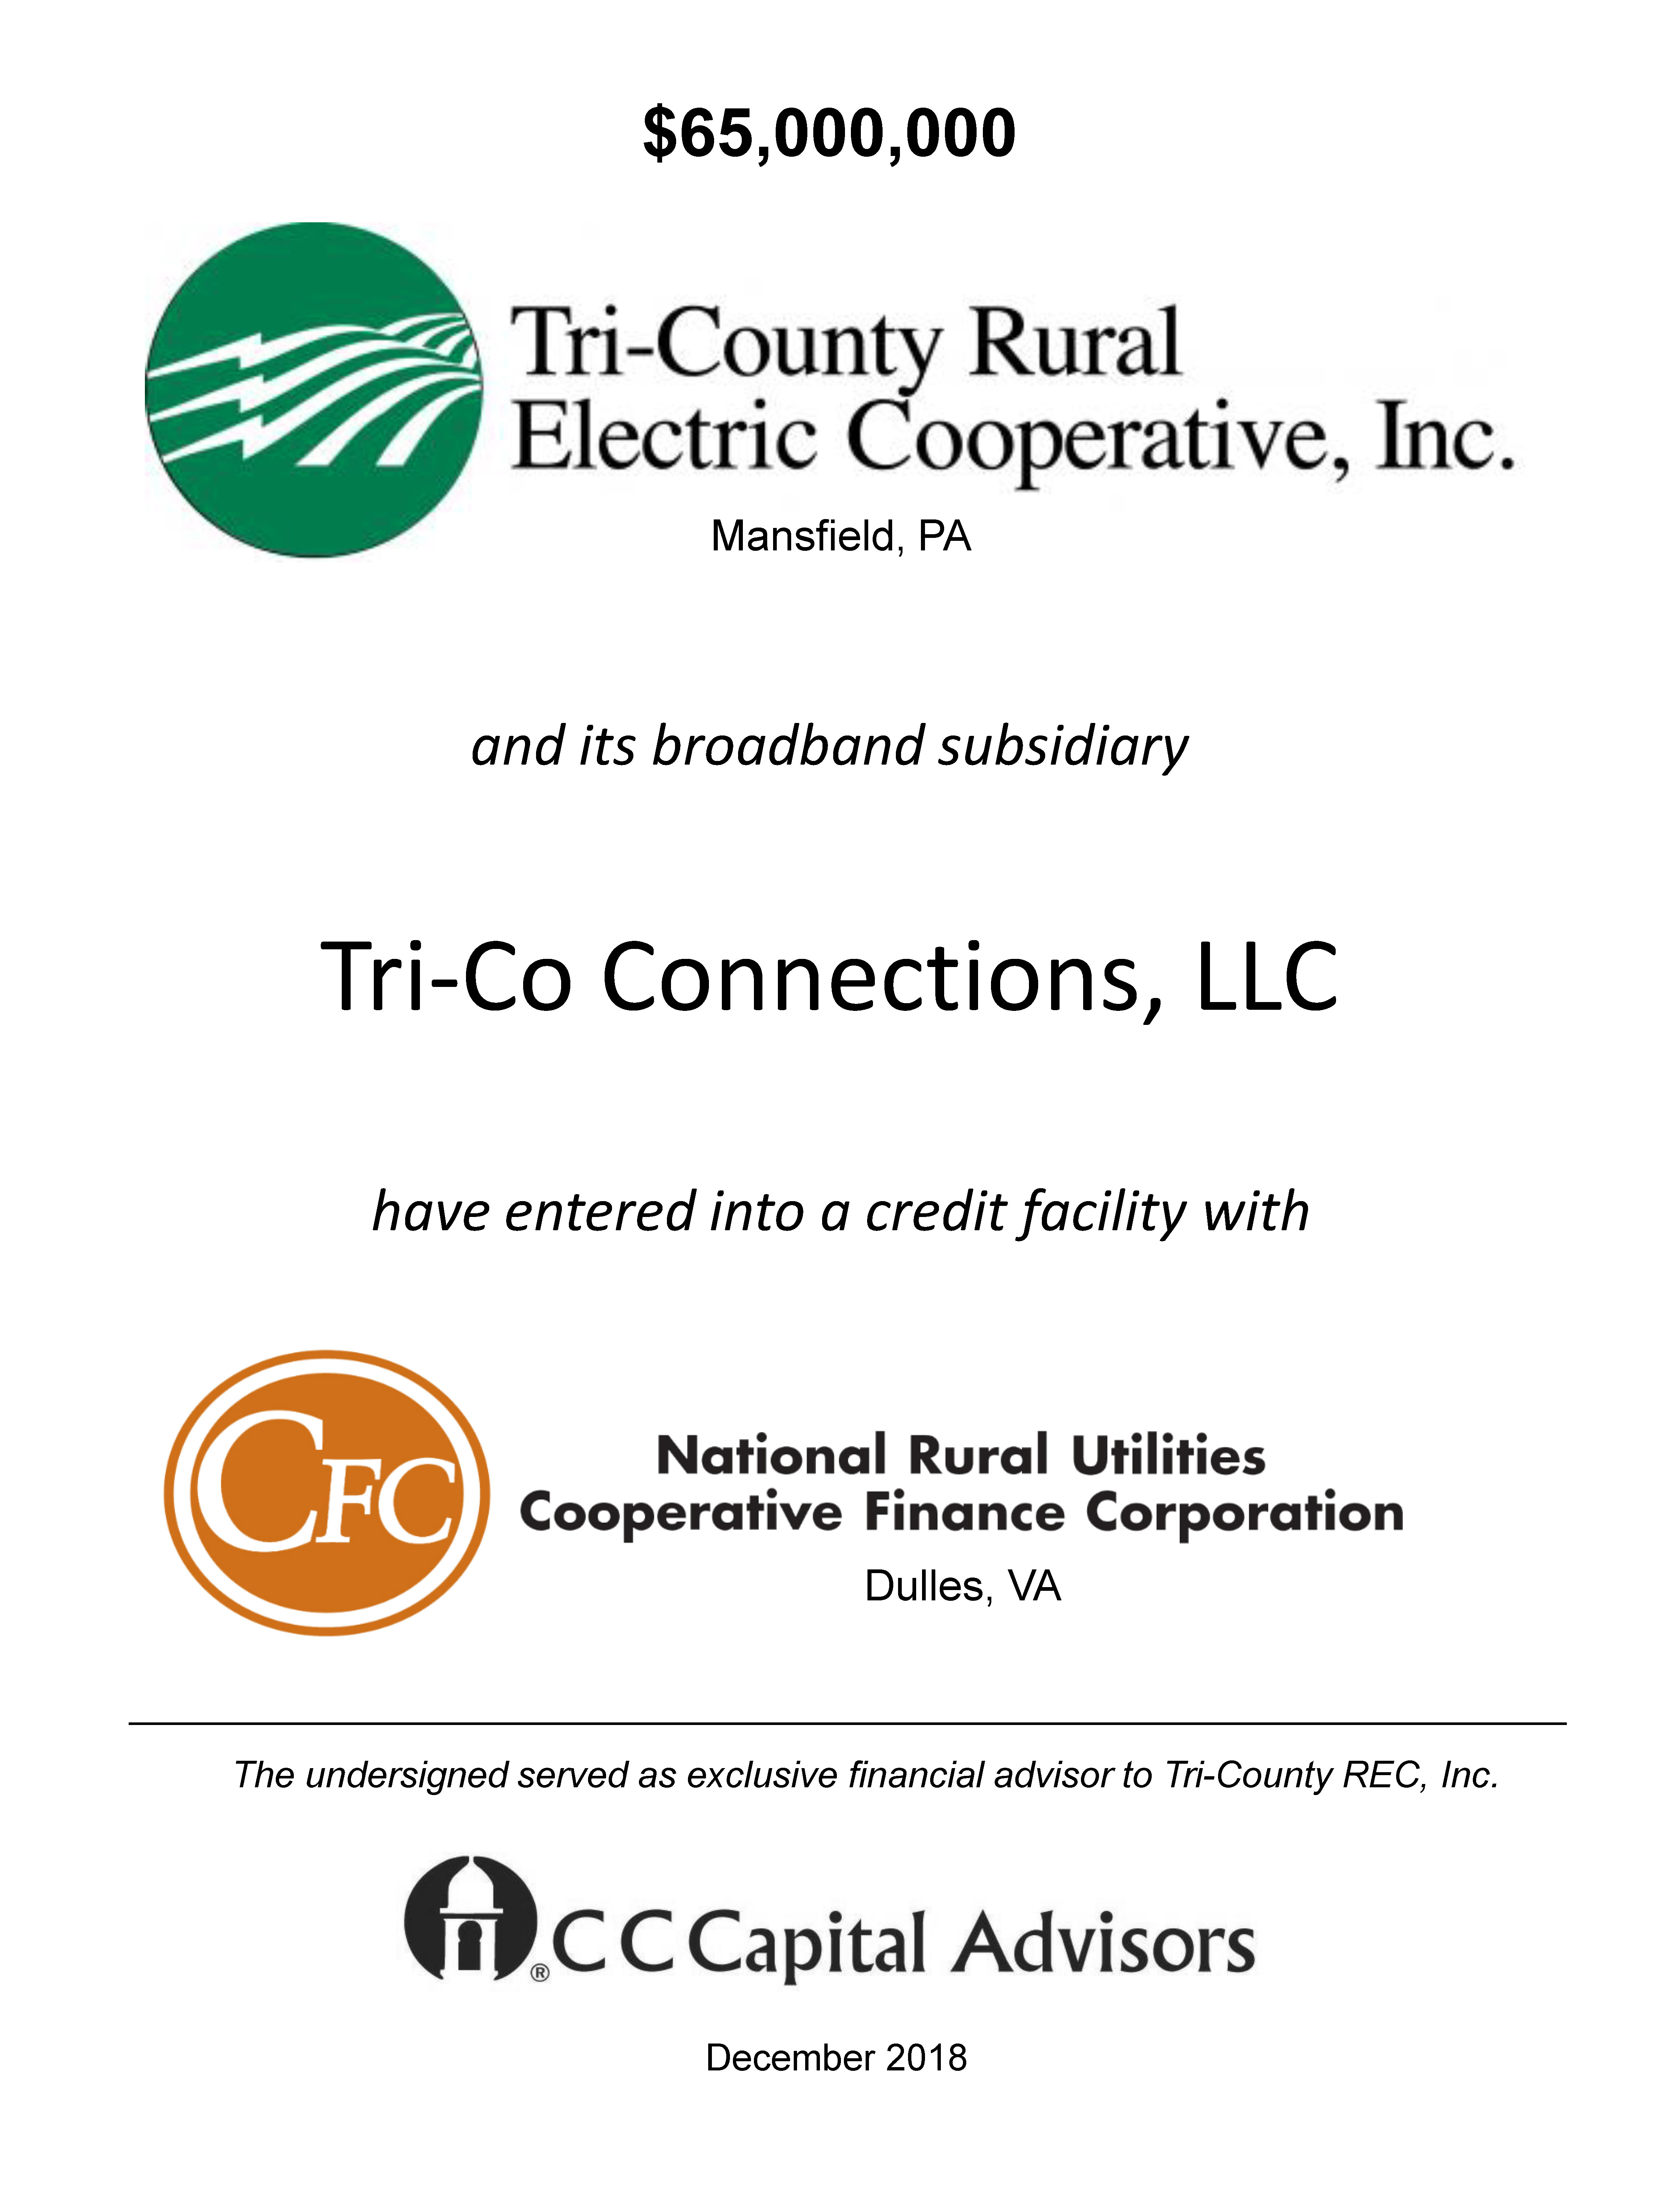 Tri-County Rural Electric Cooperative, Inc.